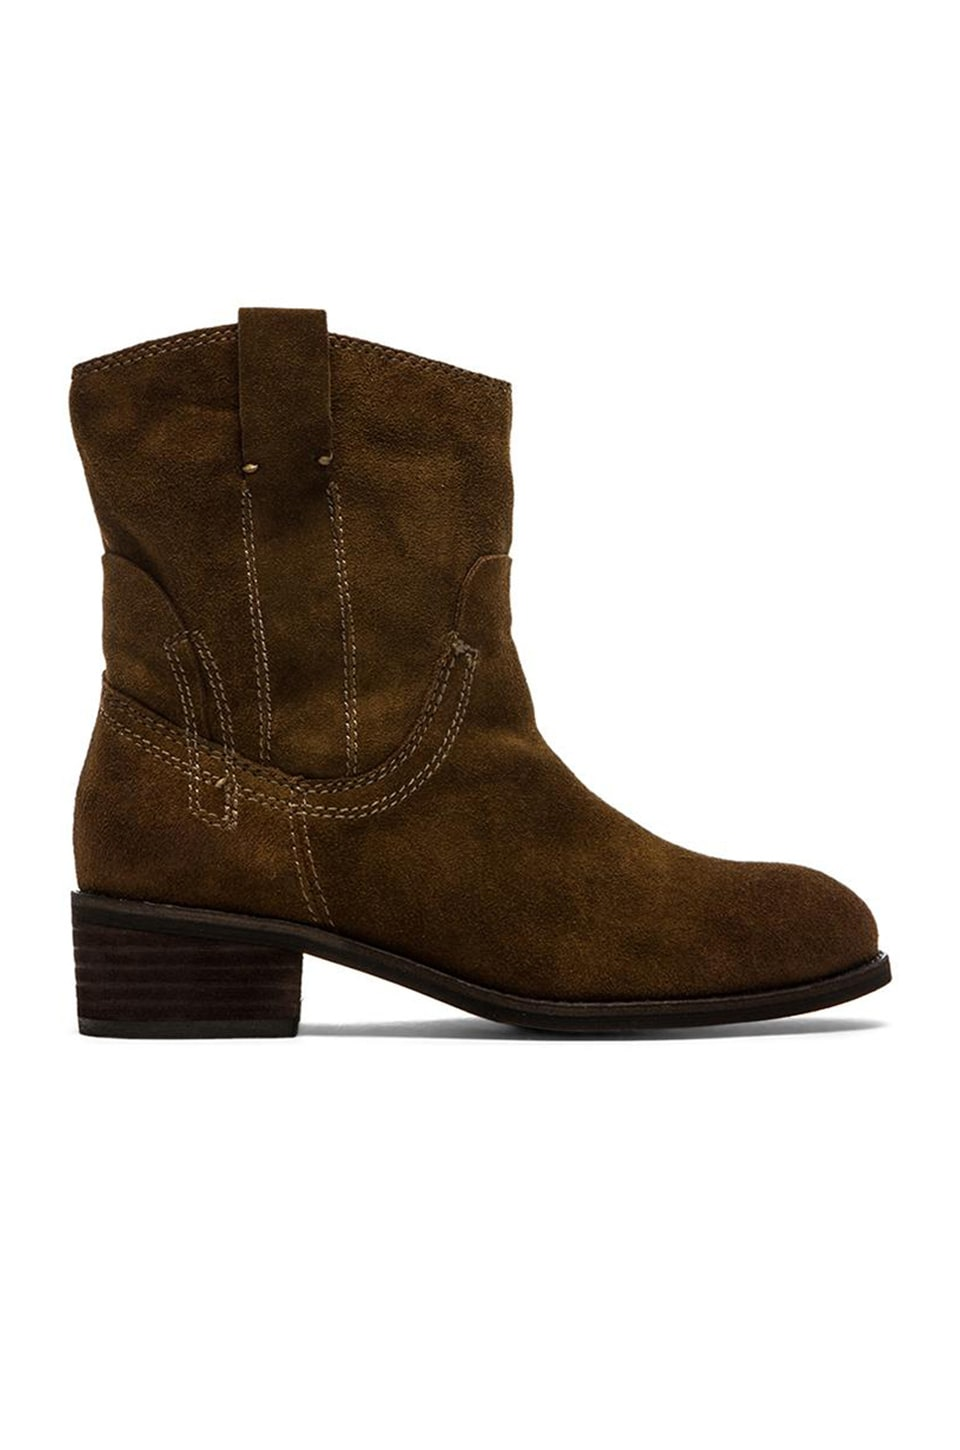 Jeffrey Campbell St. Elmo Bootie in Brown Distressed Suede